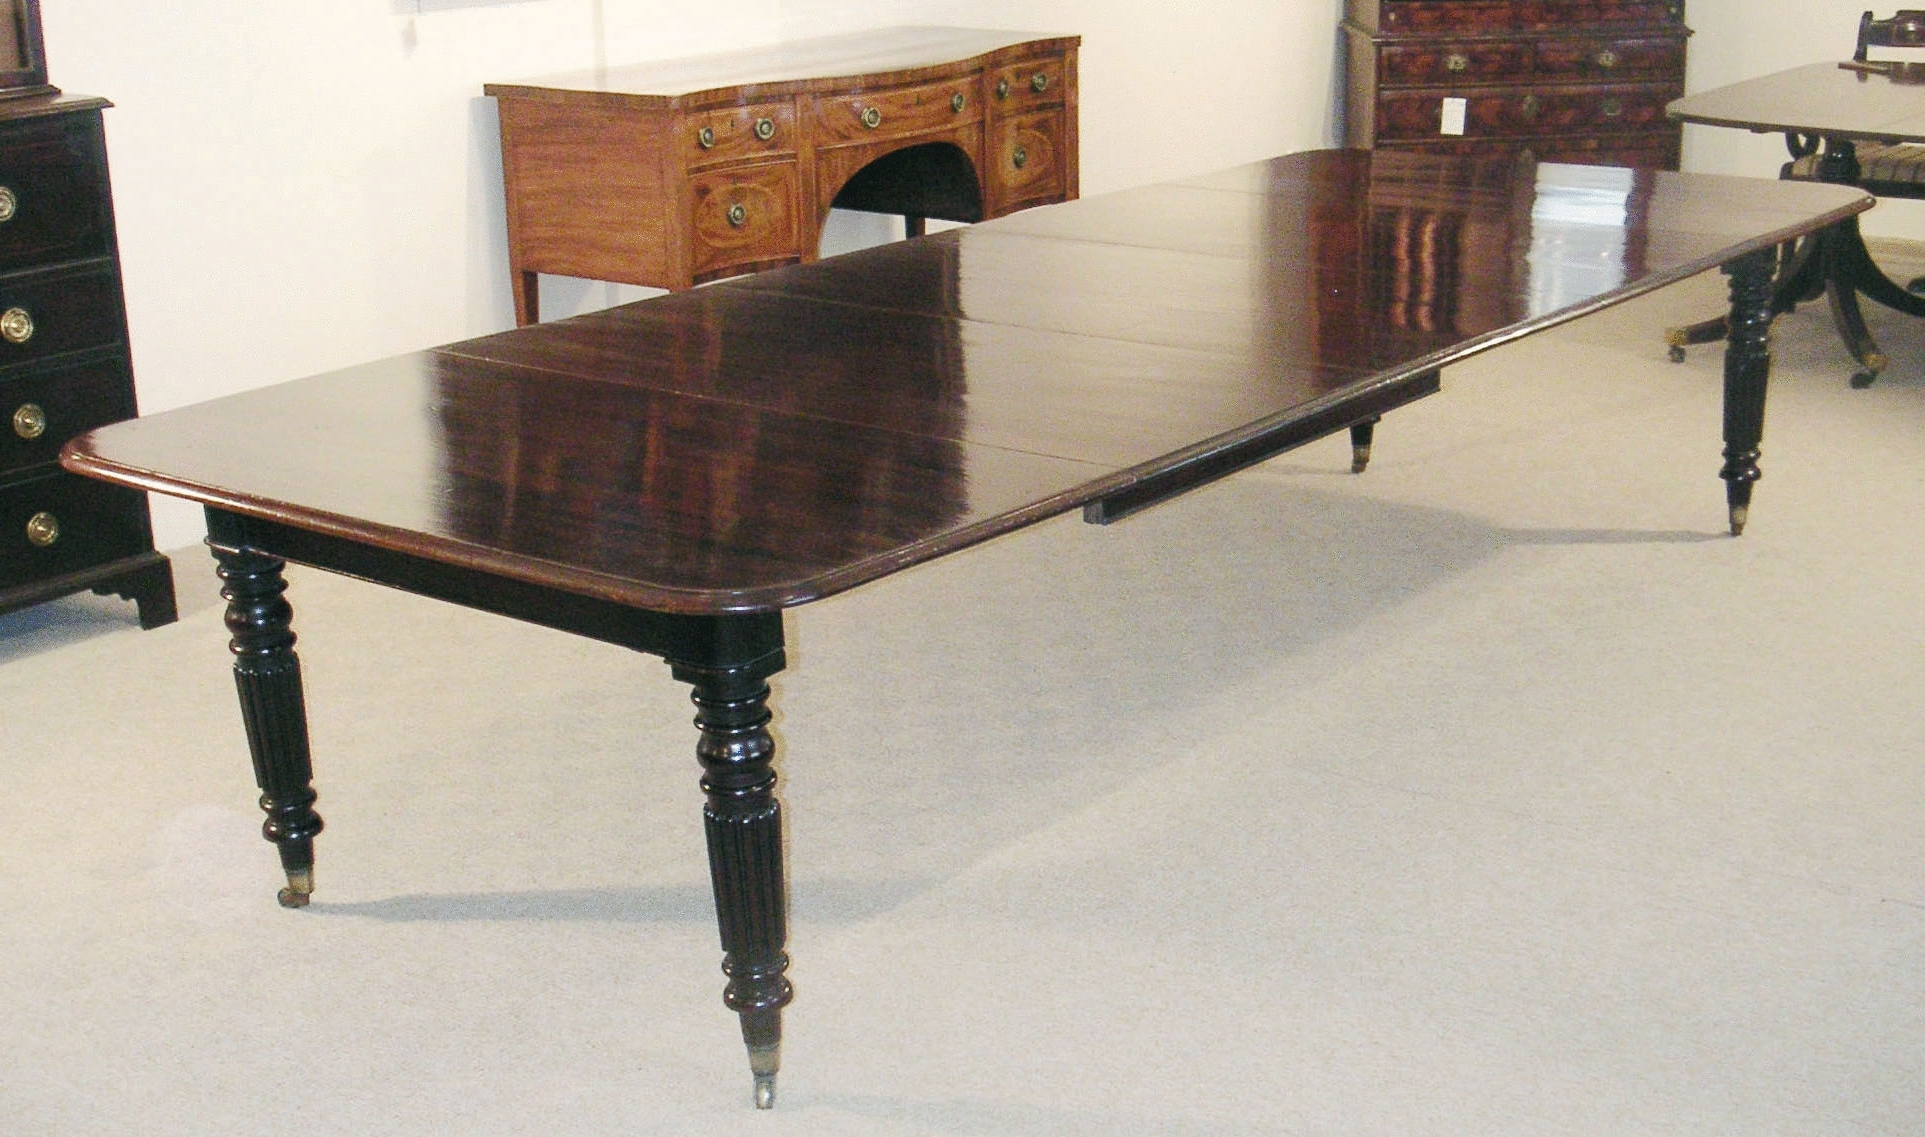 Extending Dining Tables With 14 Seats In Recent Mahogany Extending Dining Table To Seat 10 14 (C. 1835 England) From (Gallery 13 of 25)